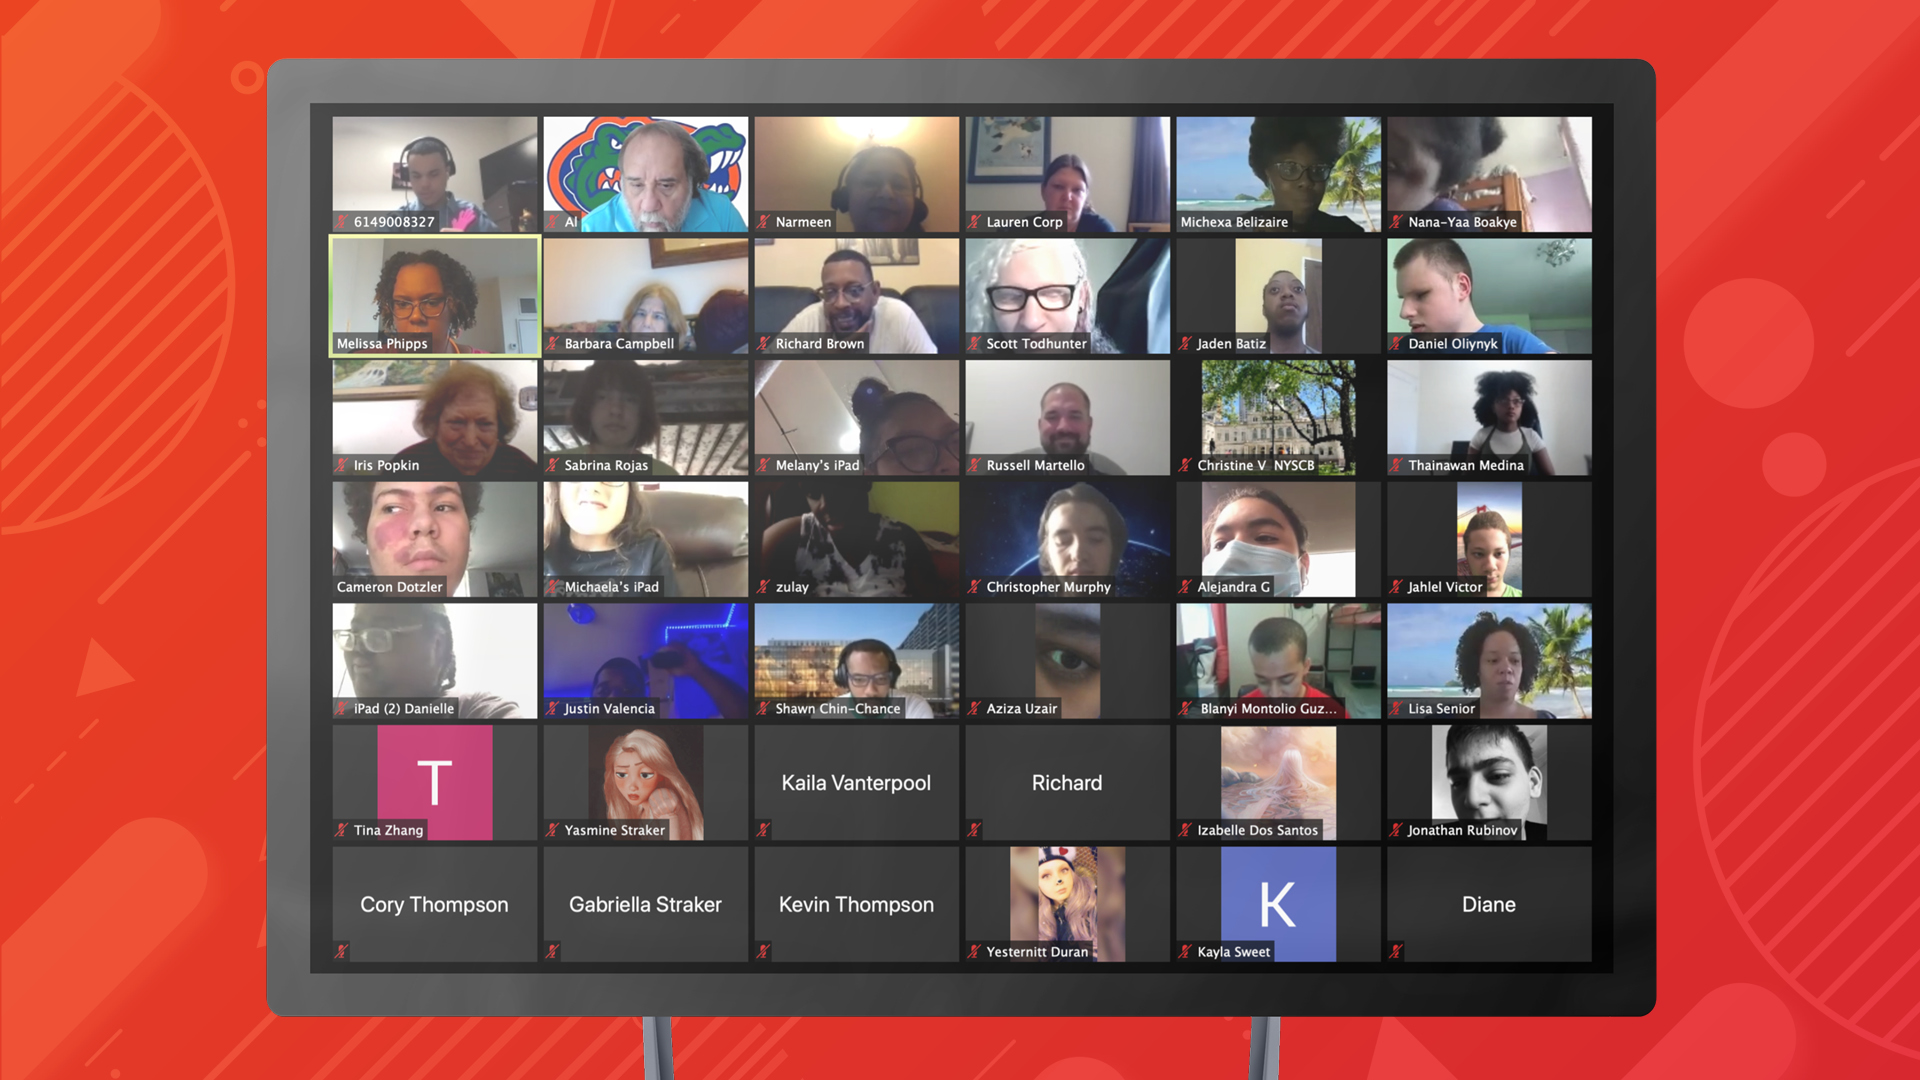 A large computer monitor shows a massive Zoom conference with over 42 participants.